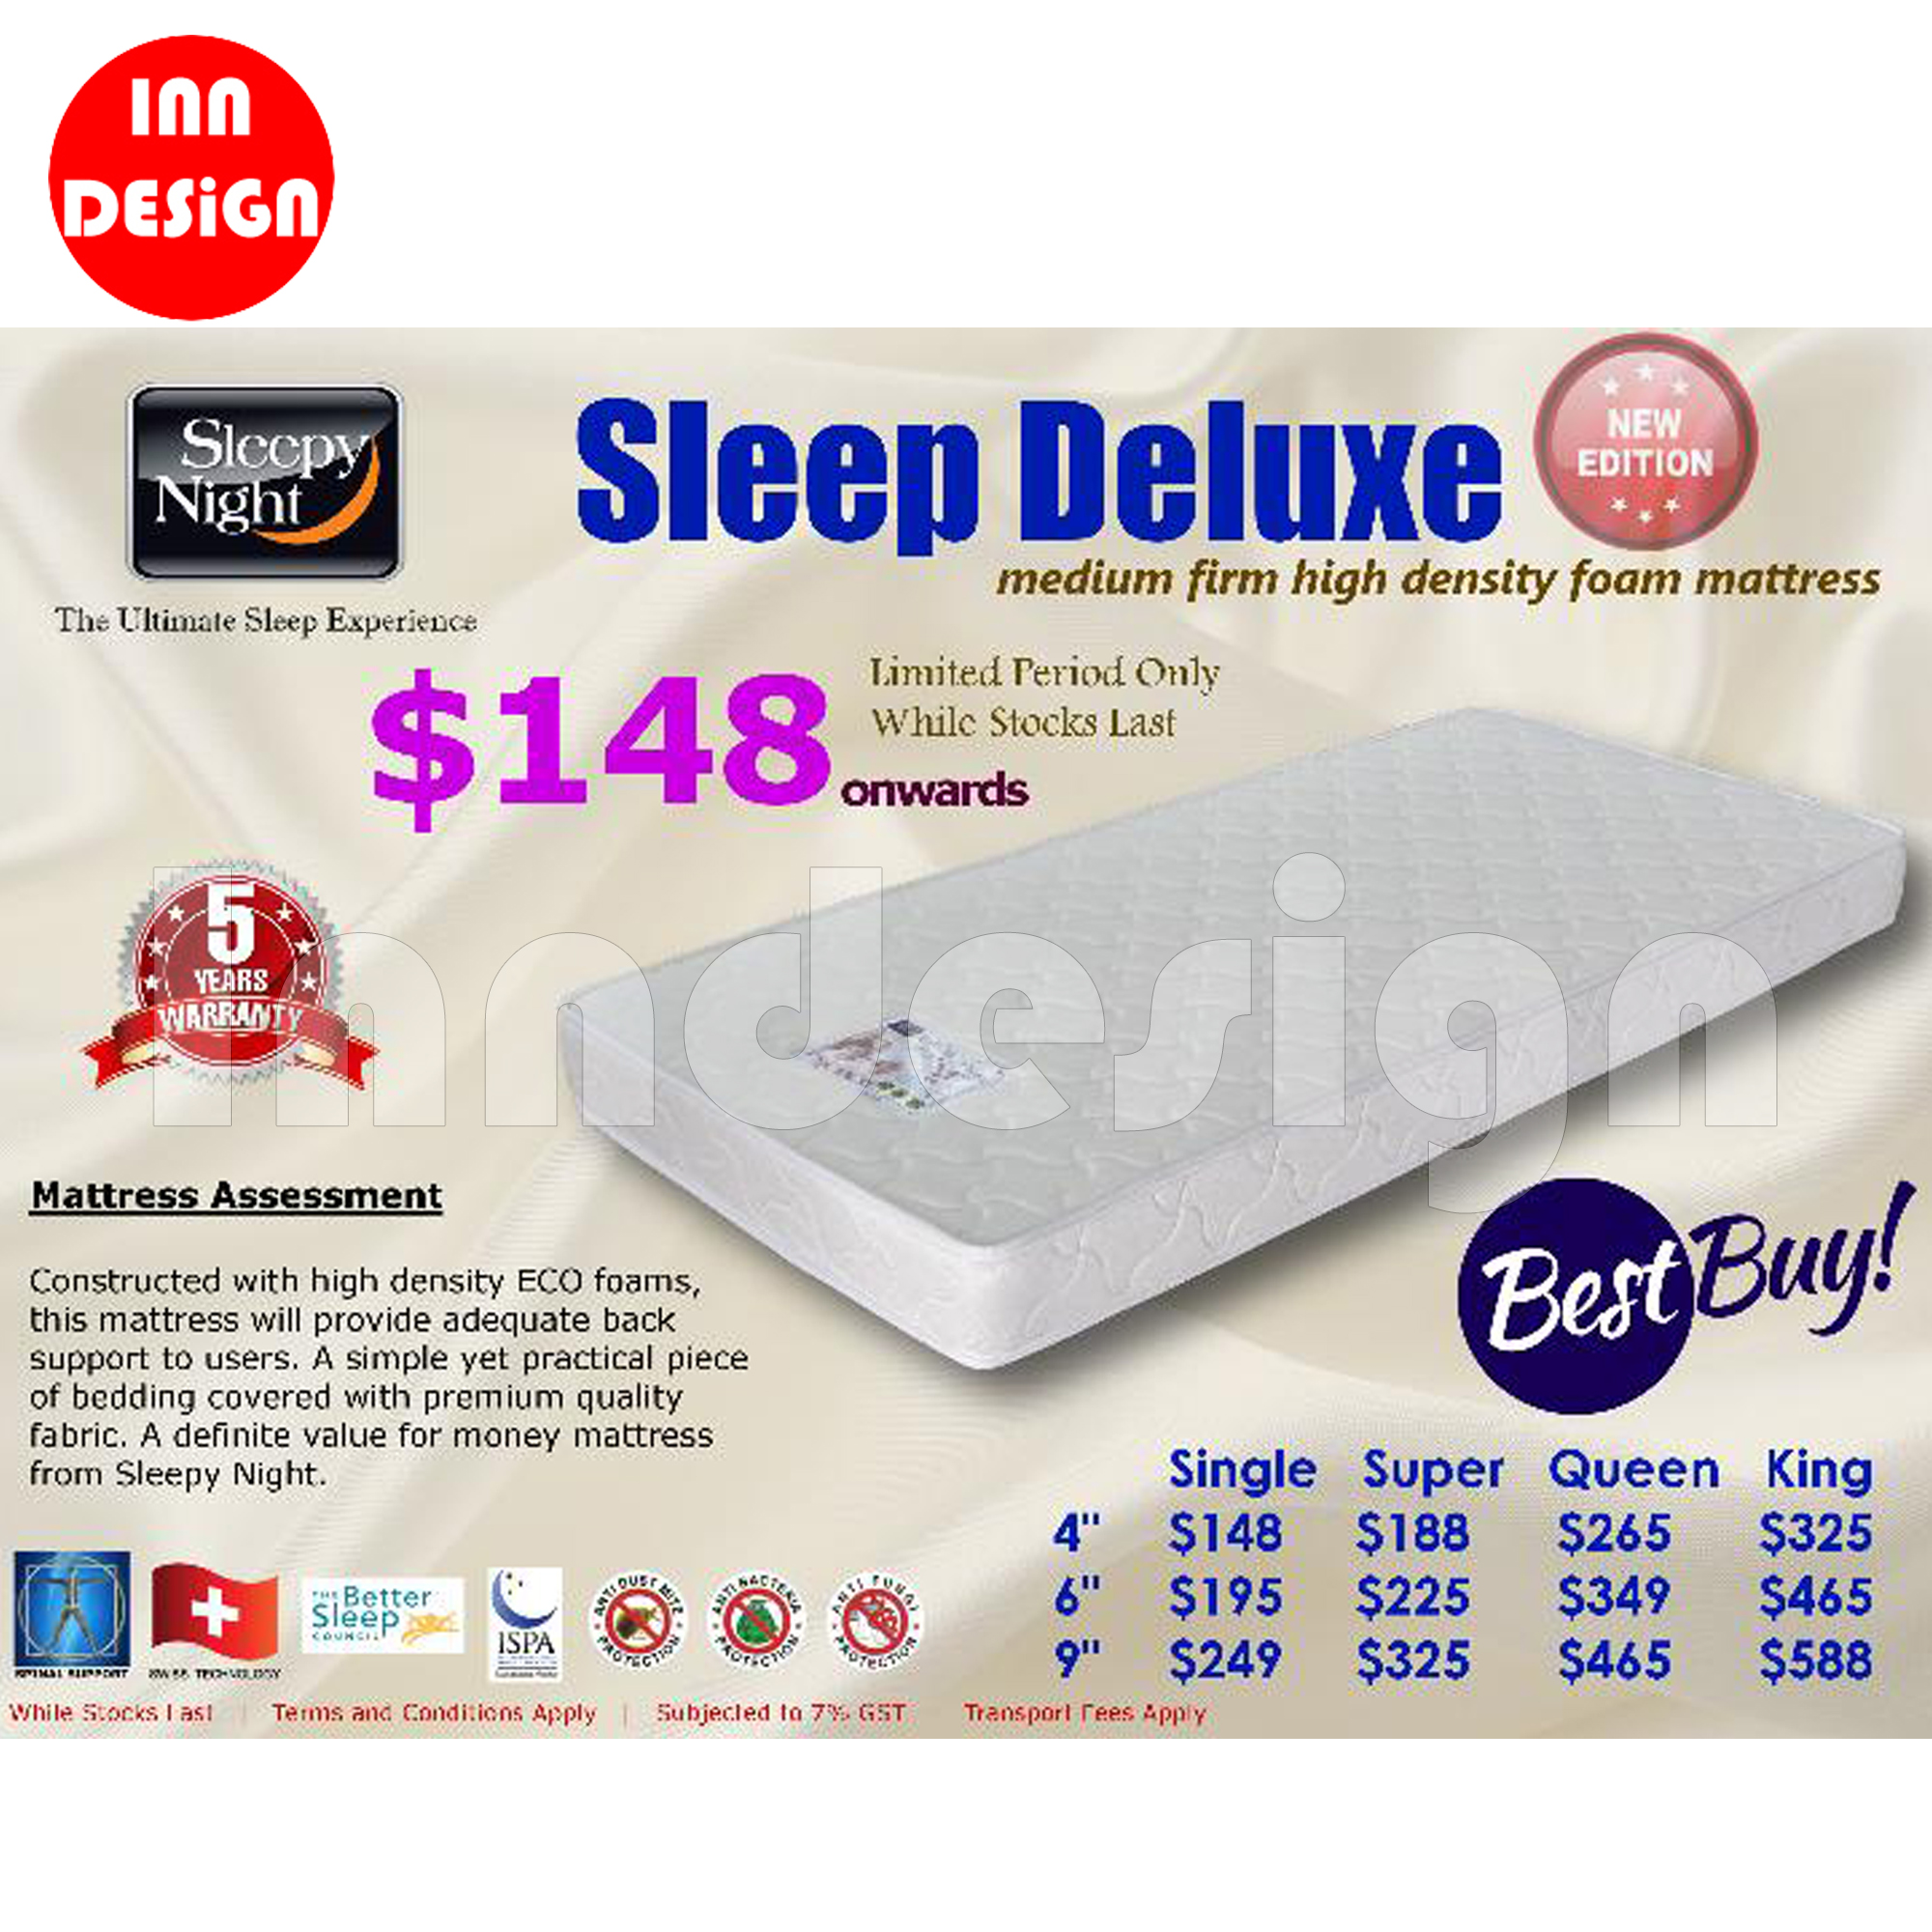 "Single 4"" SleepyNight High Density Foam Mattress"